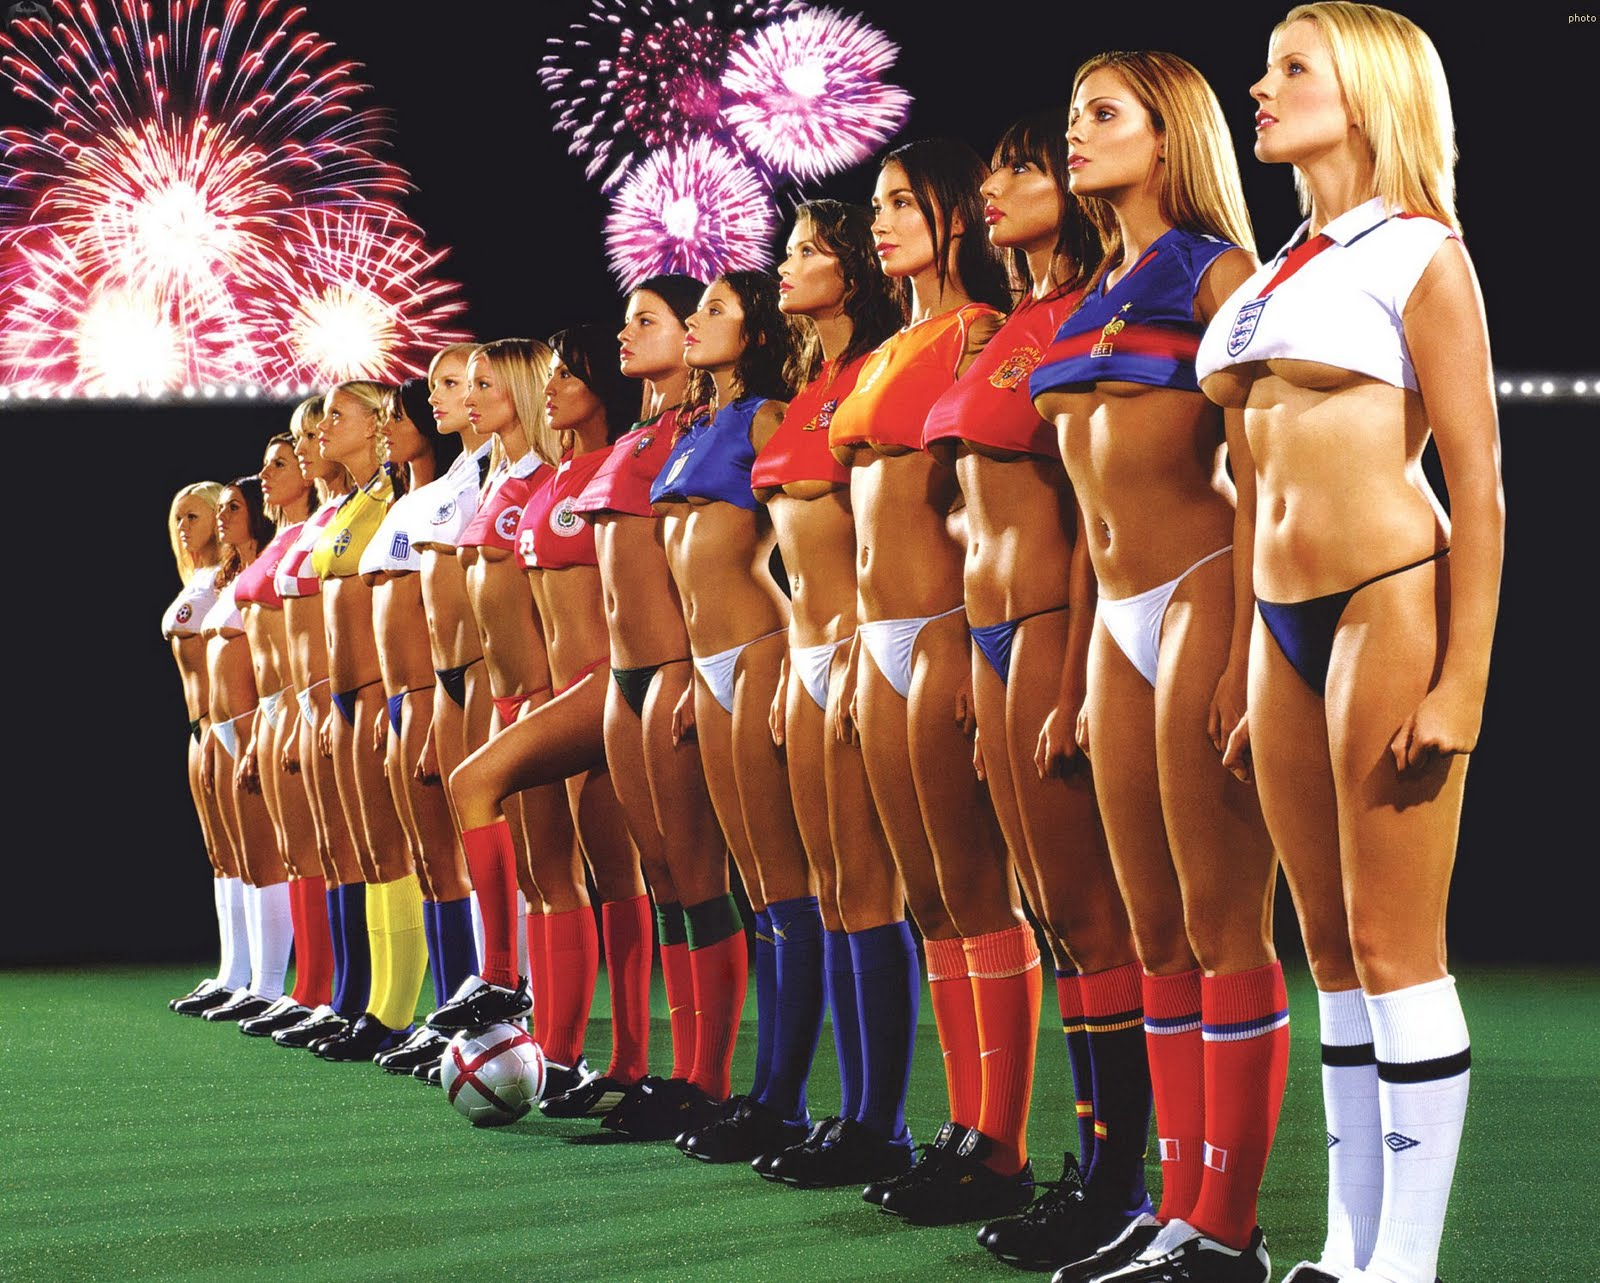 Hot Girls Soccer Team